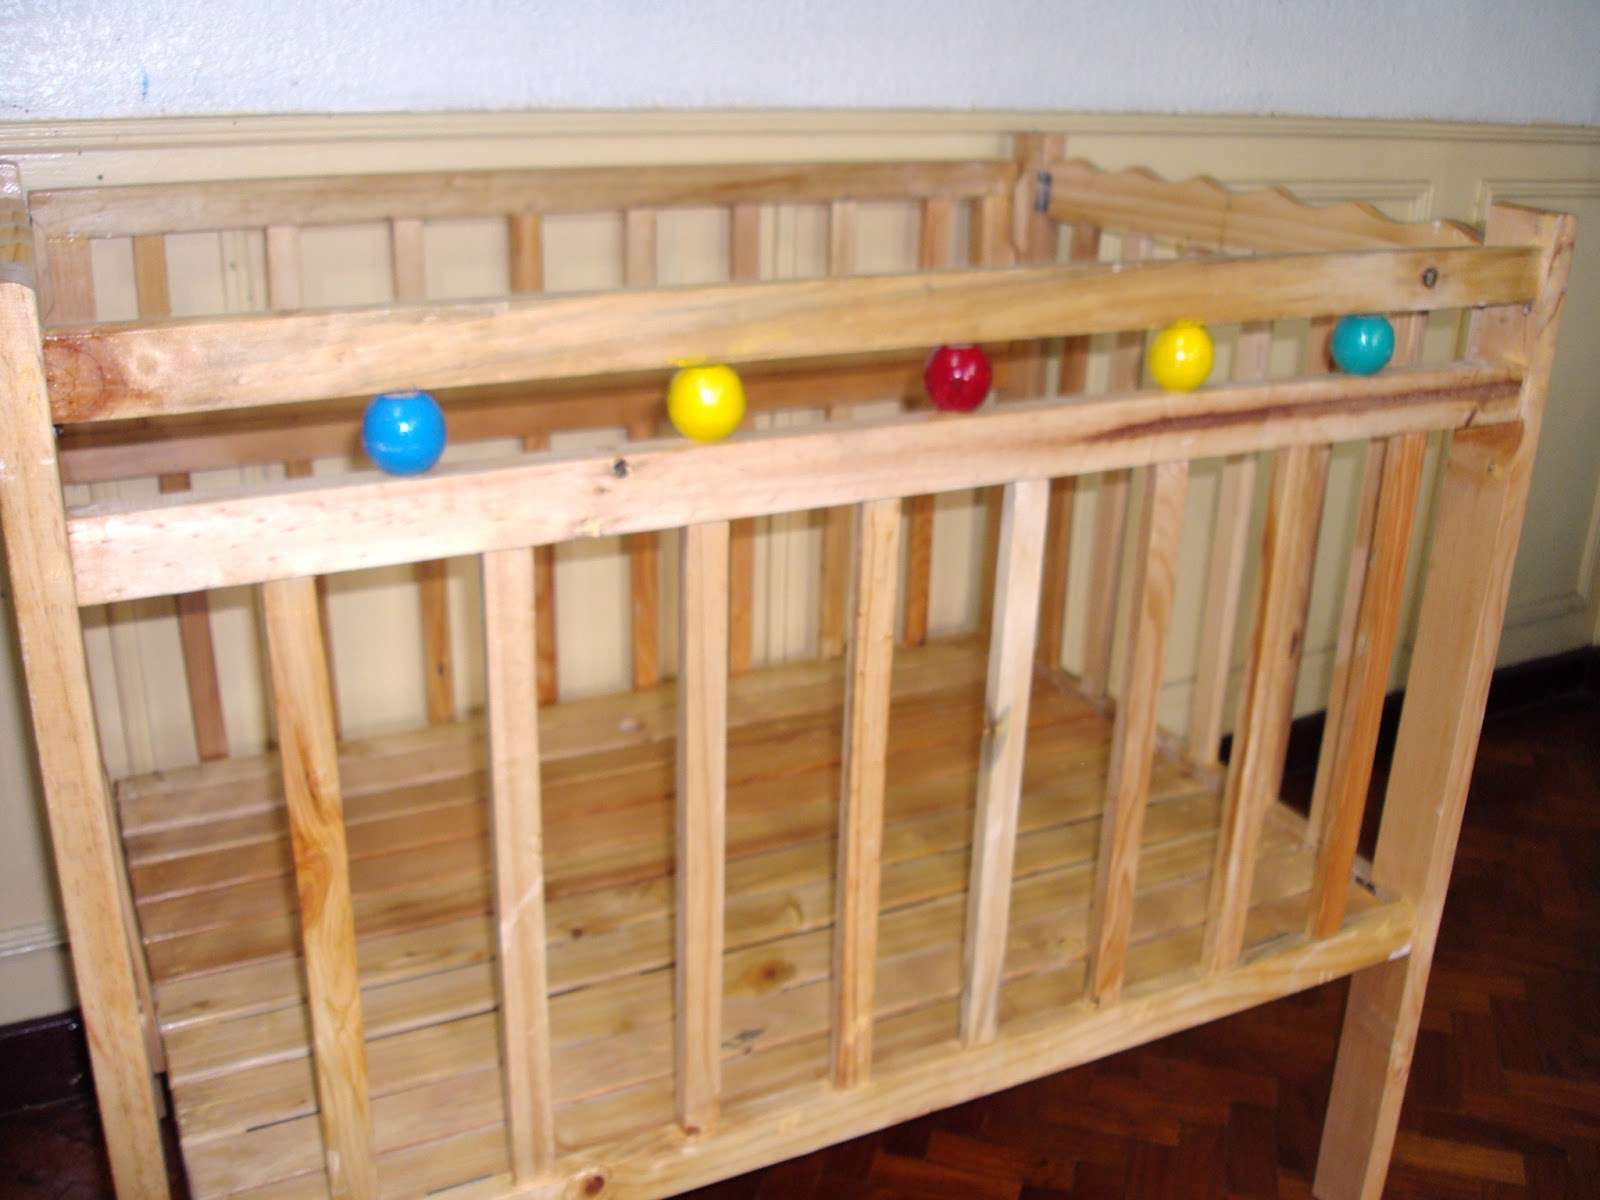 Crib for sale in cebu - Gocrib Adventure Crib For Sale Baby Wooden Crib For Sale In Quezon City Ecowaste Coalition